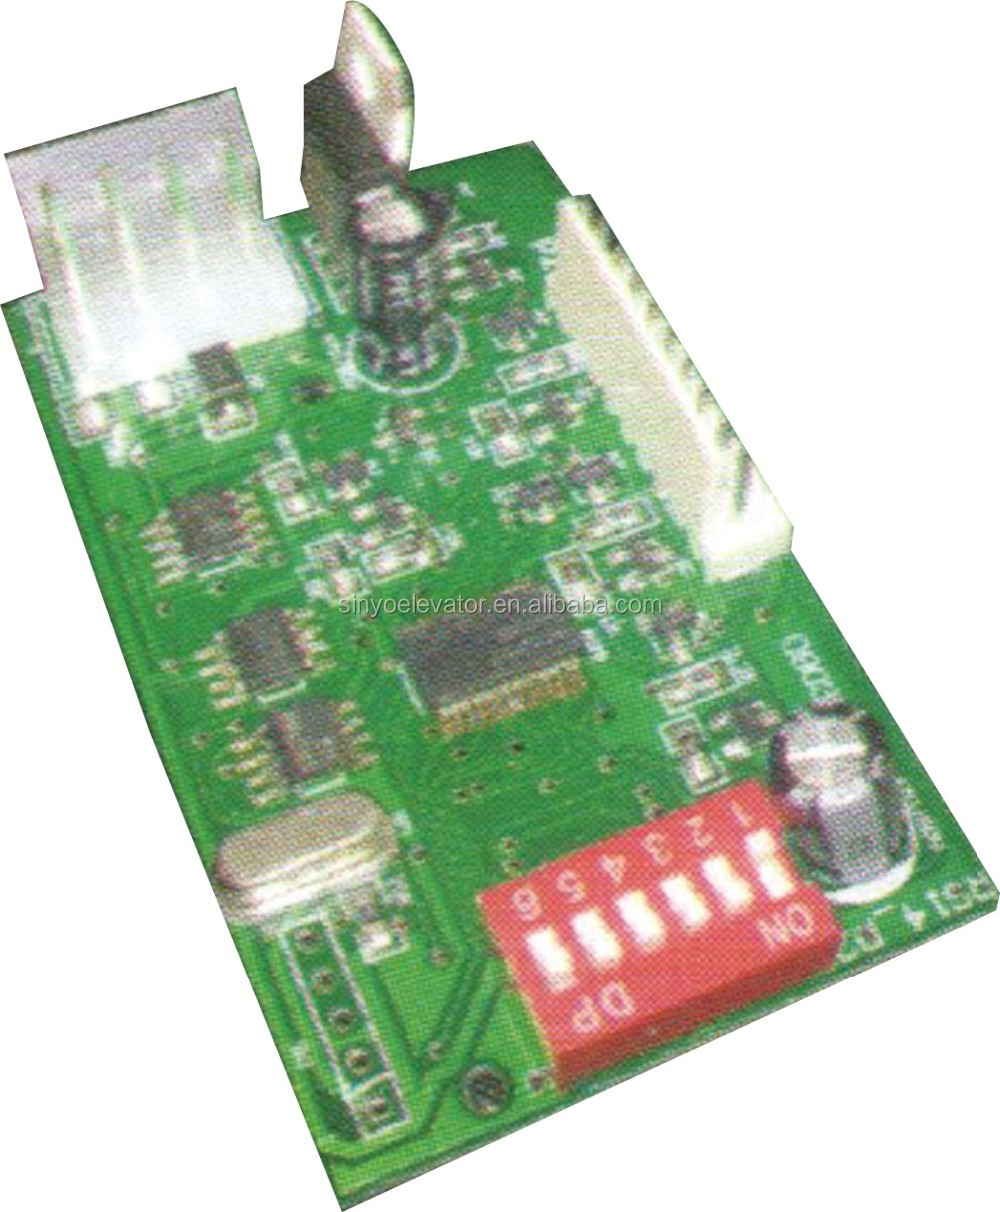 PC Board For Elevator RS5-3 Low